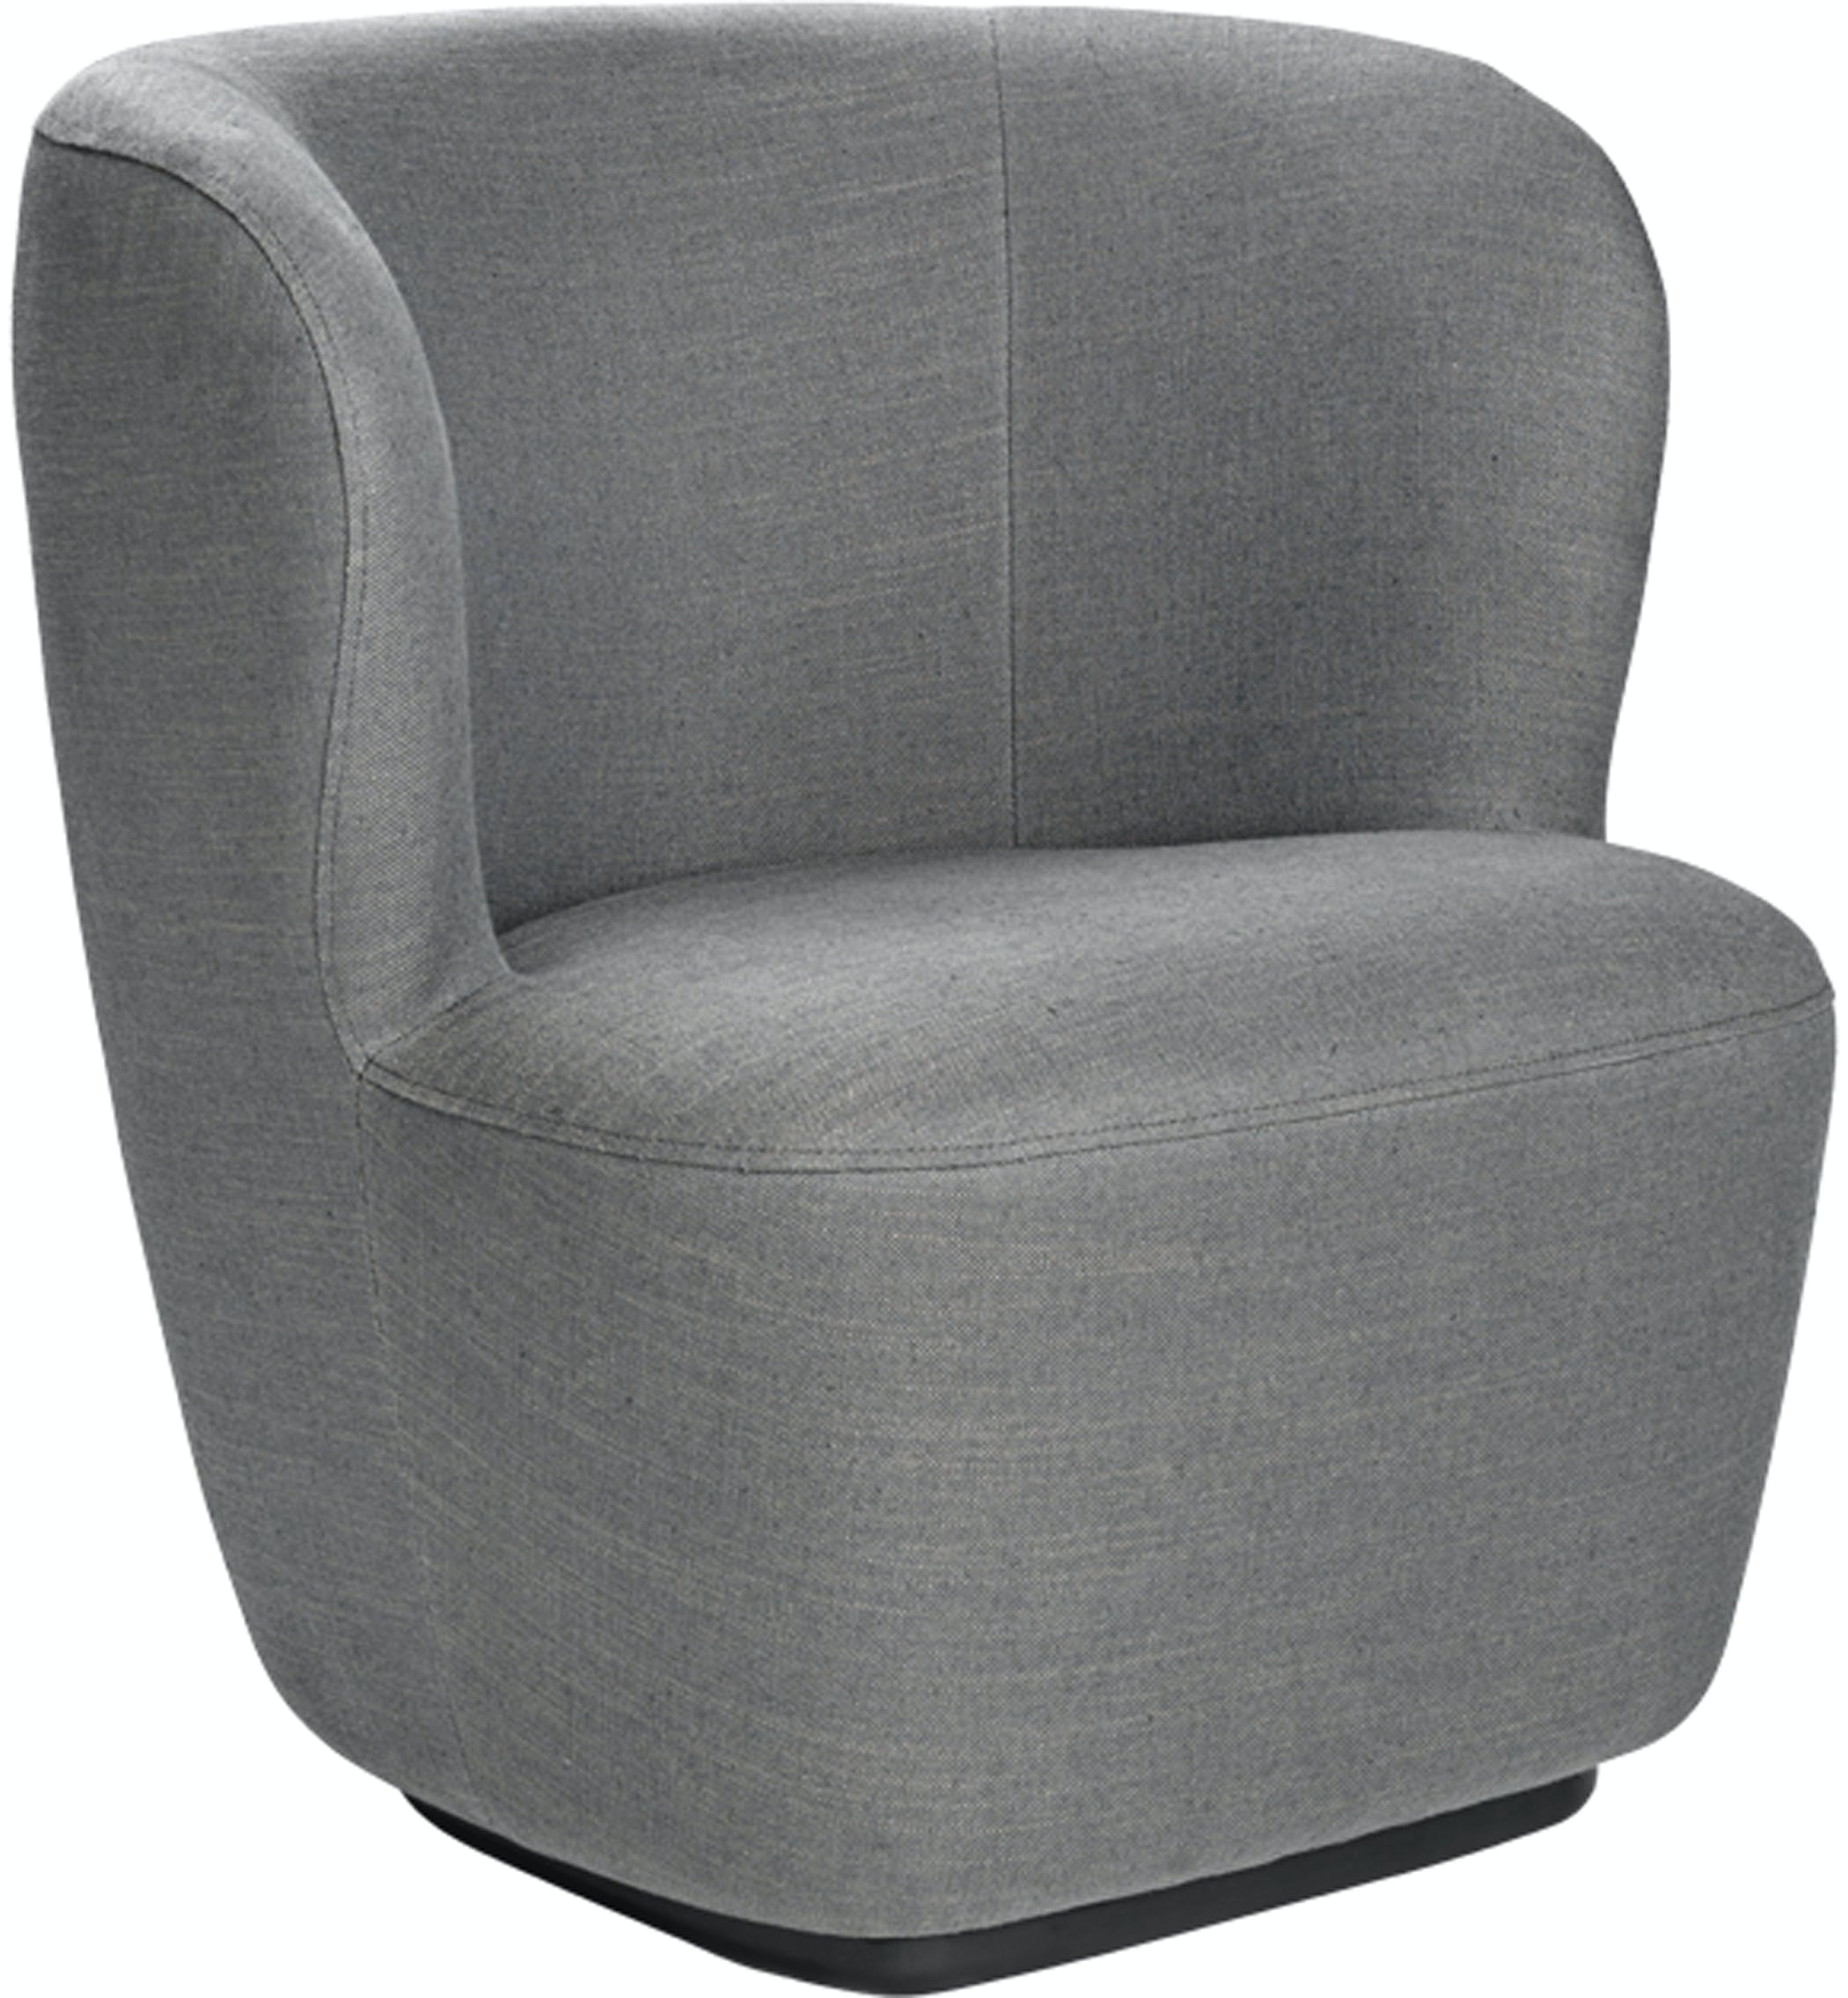 Stay Loungechair 75 Swivel Chambray 030 Angle Image